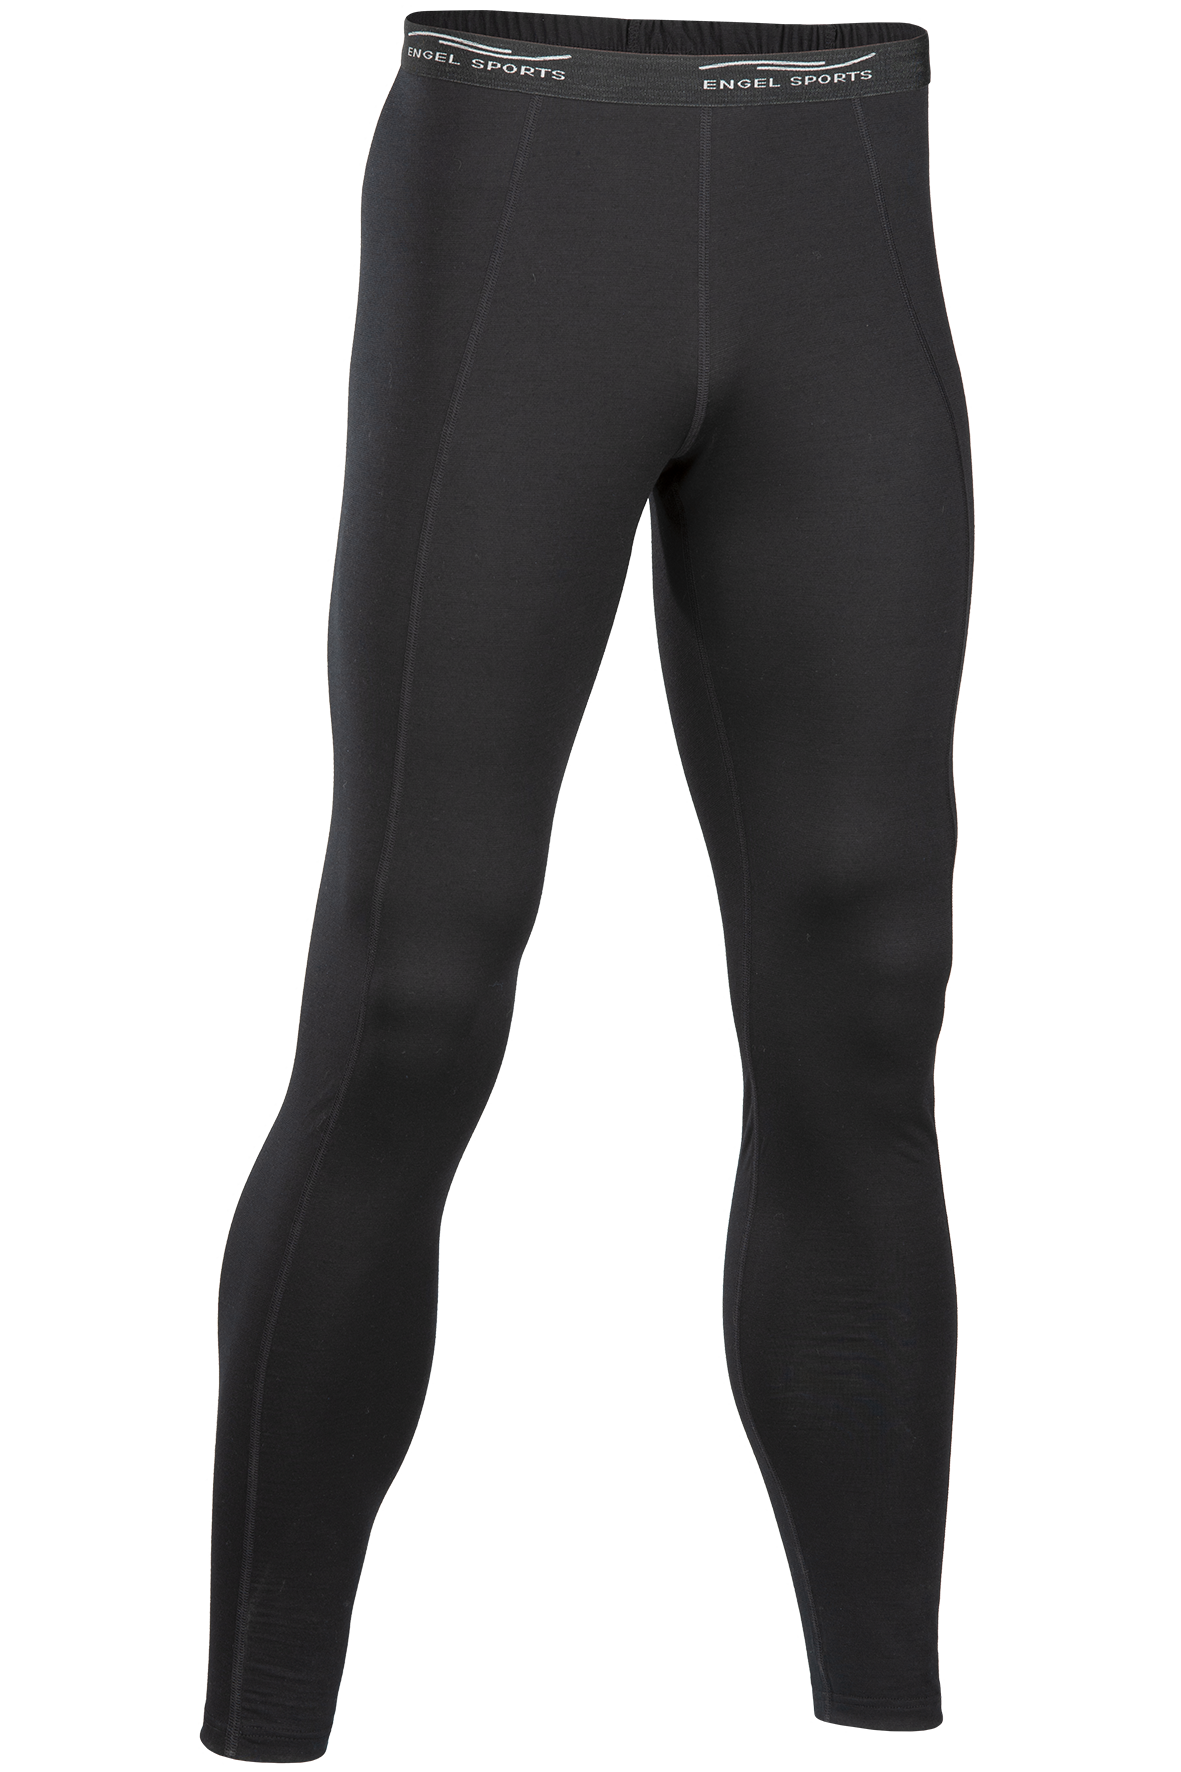 Tights uld/silke - herre